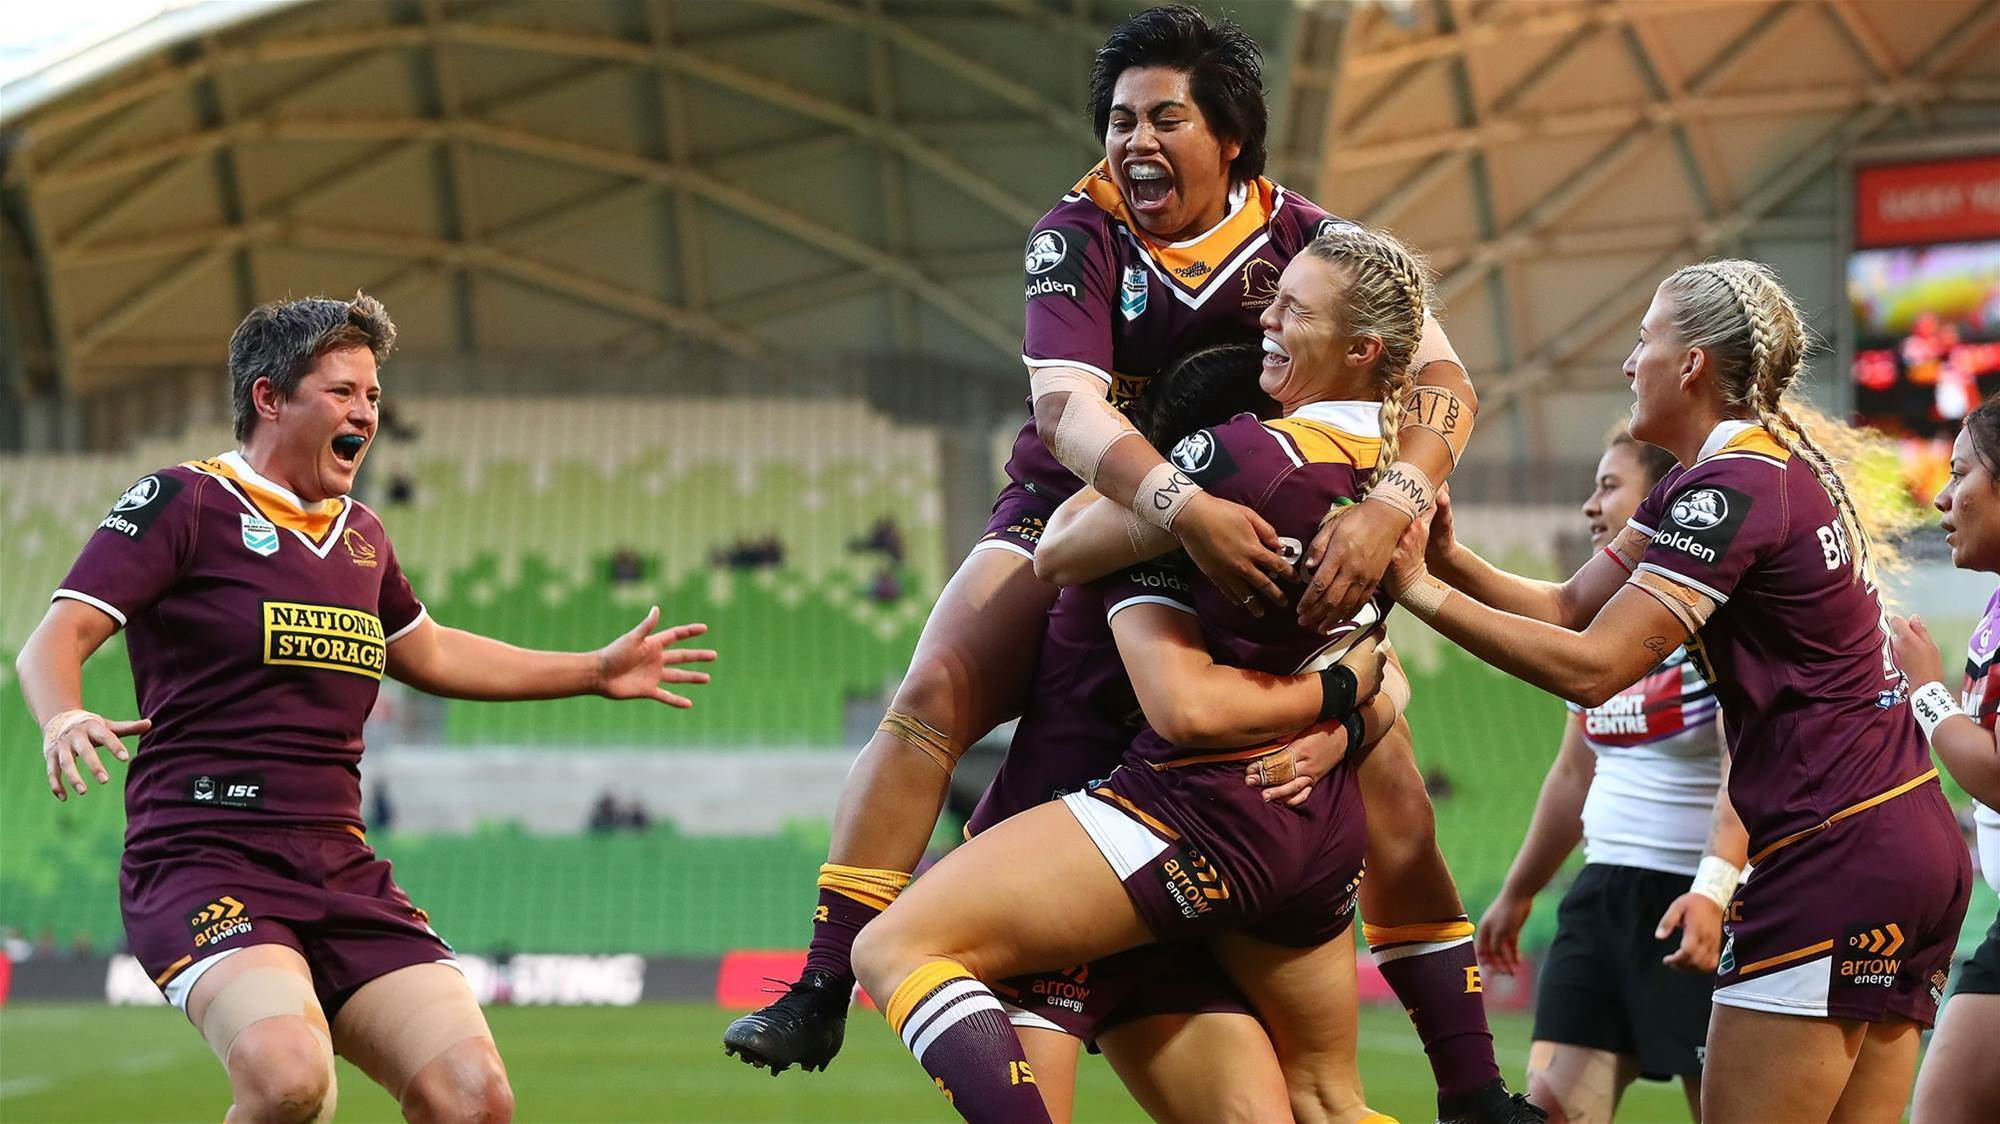 Top moments 2018: Rugby league takes centre stage